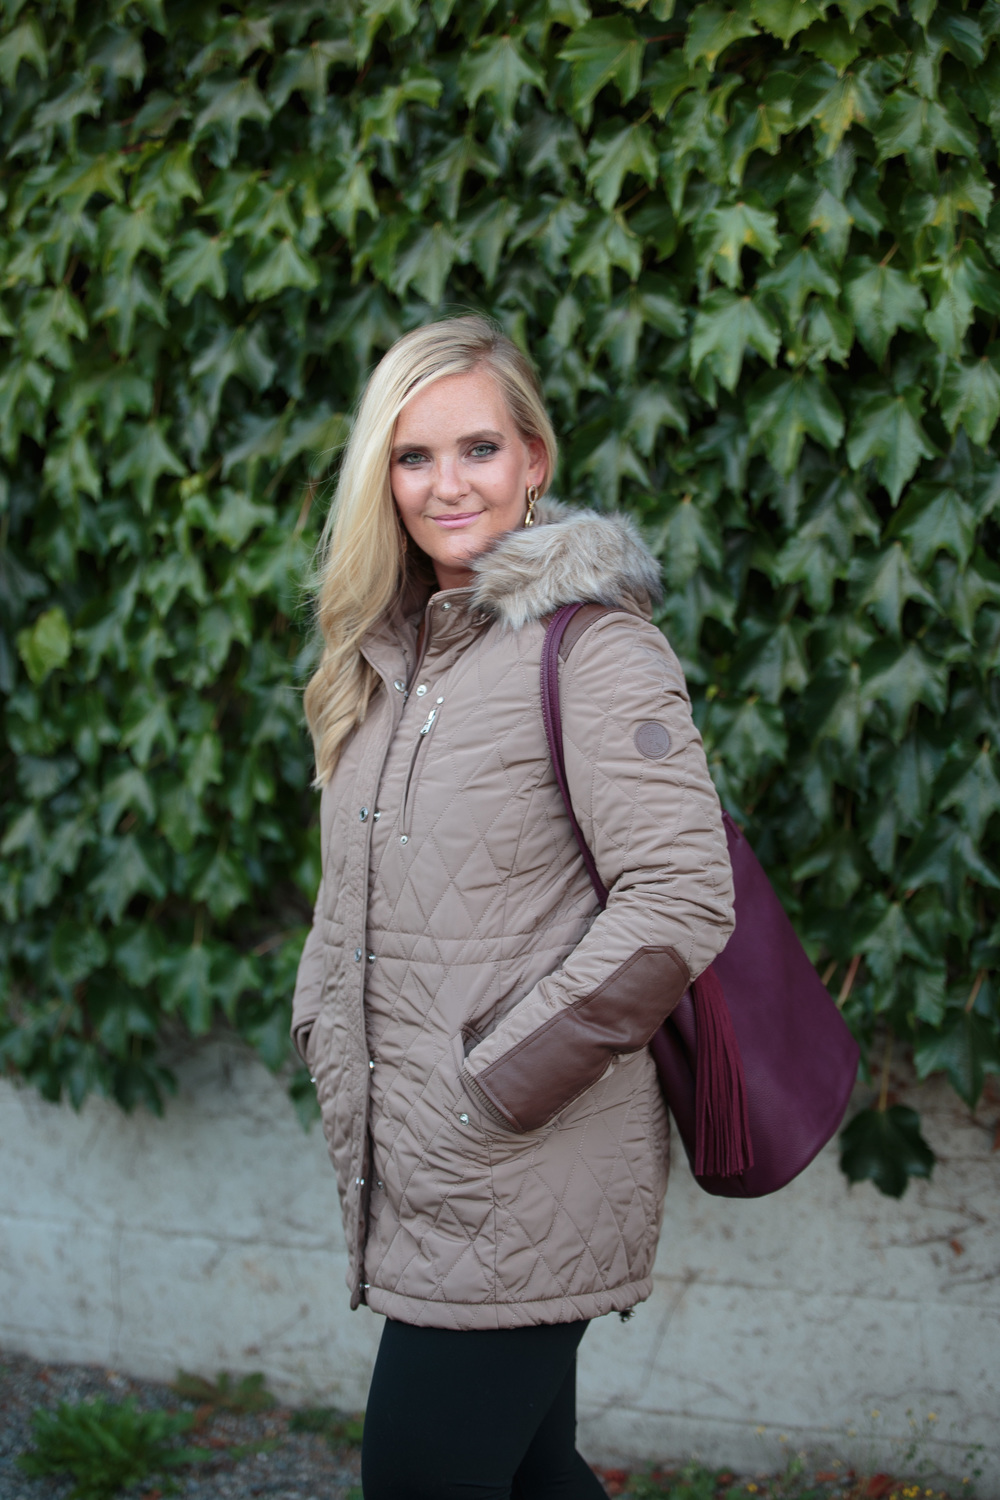 Quilted Anorak Coat for Fall 2016 (Anneke McConnell)